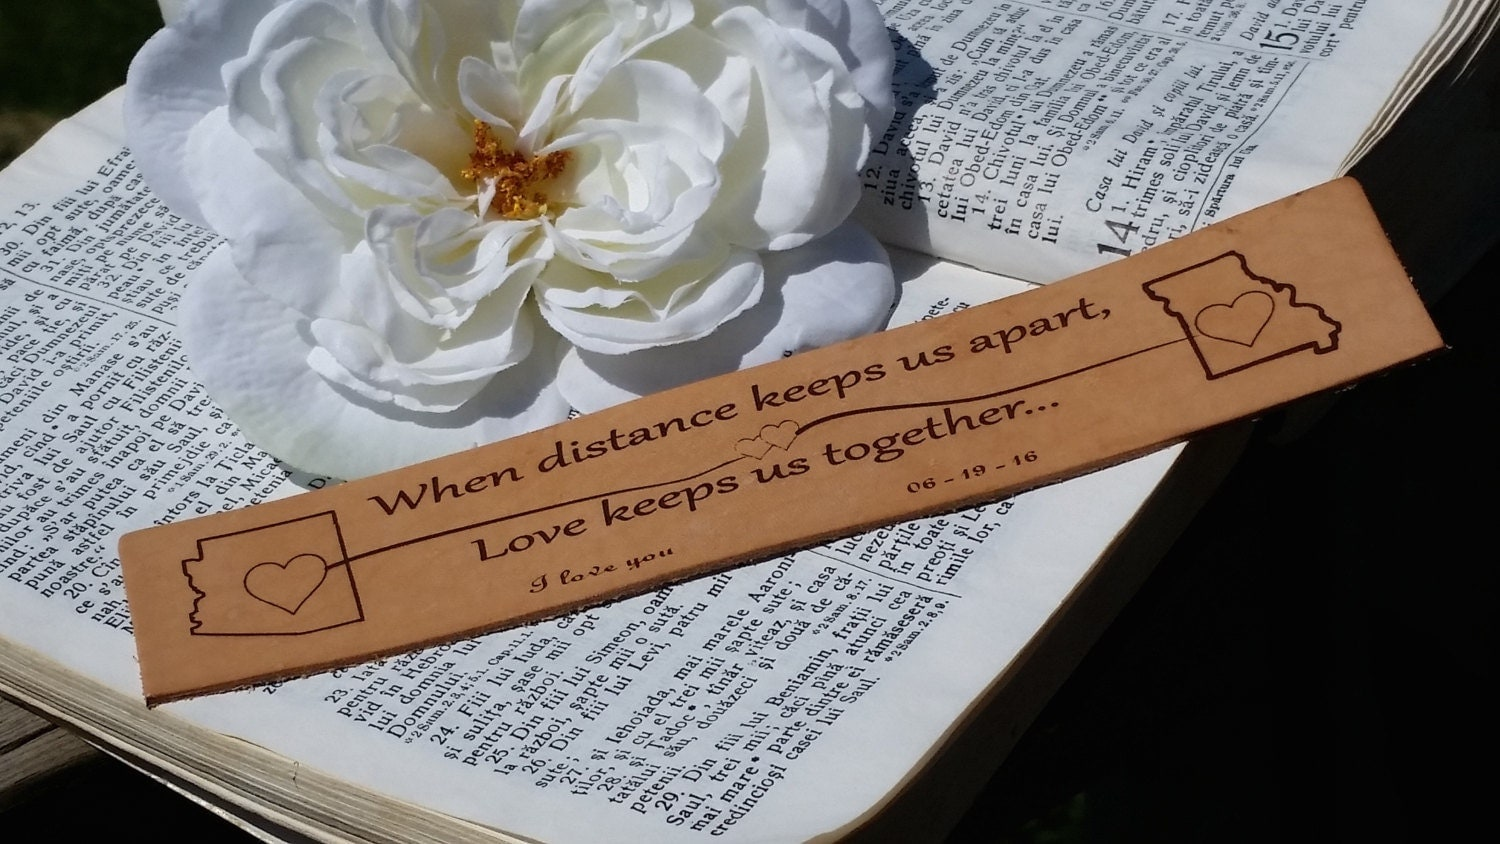 3rd Wedding Anniversary Gift For Husband: 3rd Wedding Anniversary, Custom Engraved Leather Bookmark